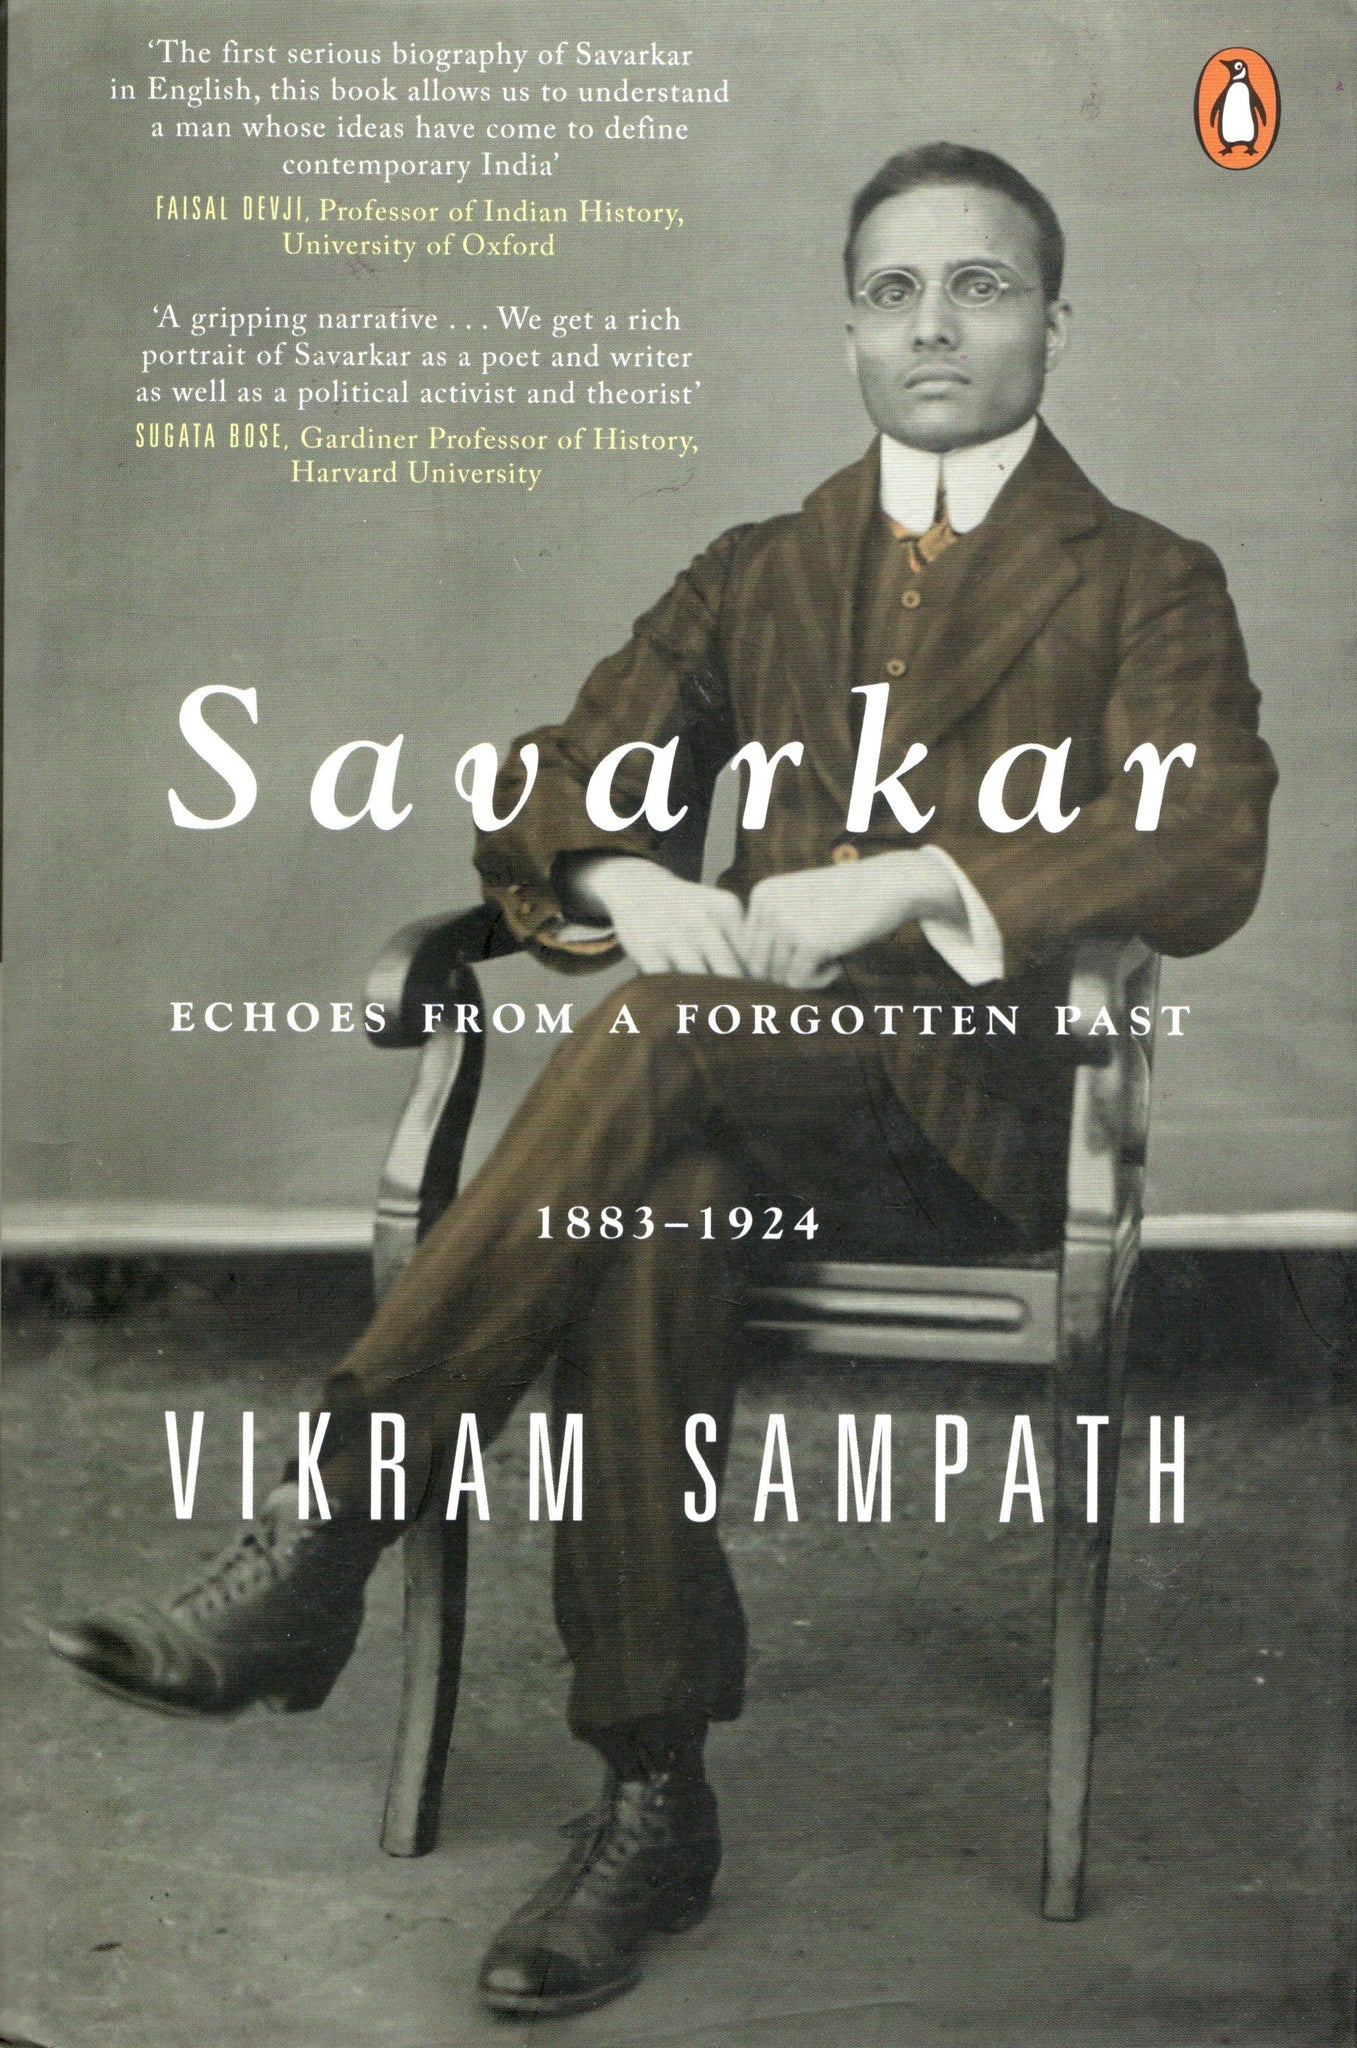 Savarkar- Echoes from a Forgotten Past 1883-1924